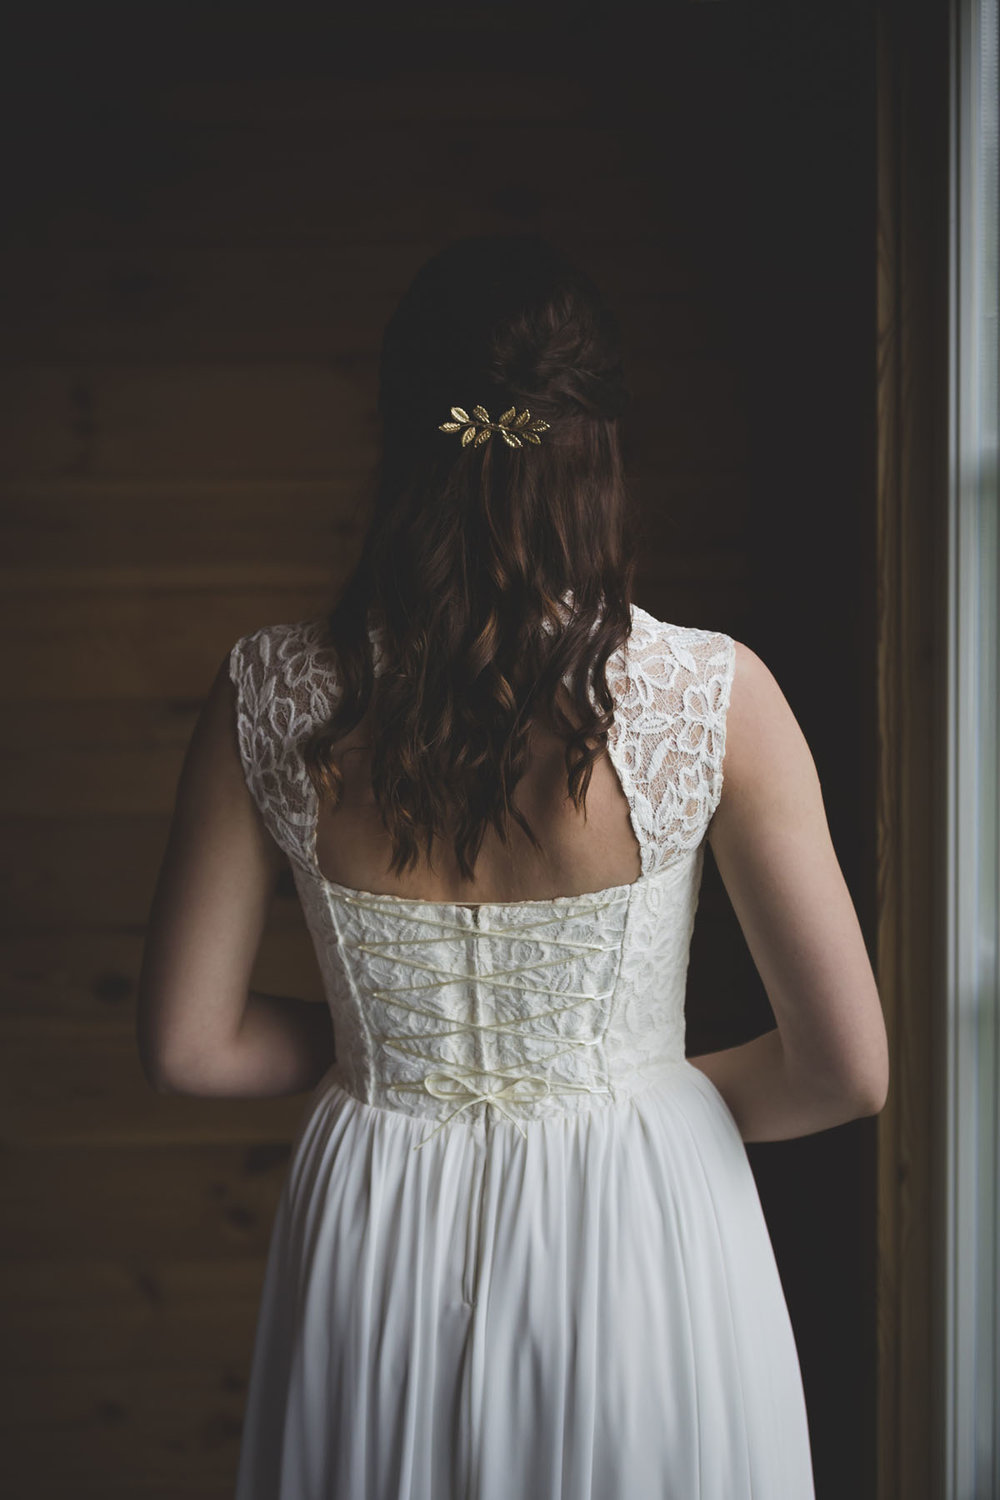 wedding-photos-015-wedding-photographer-Valdur-Rosenvald.jpg